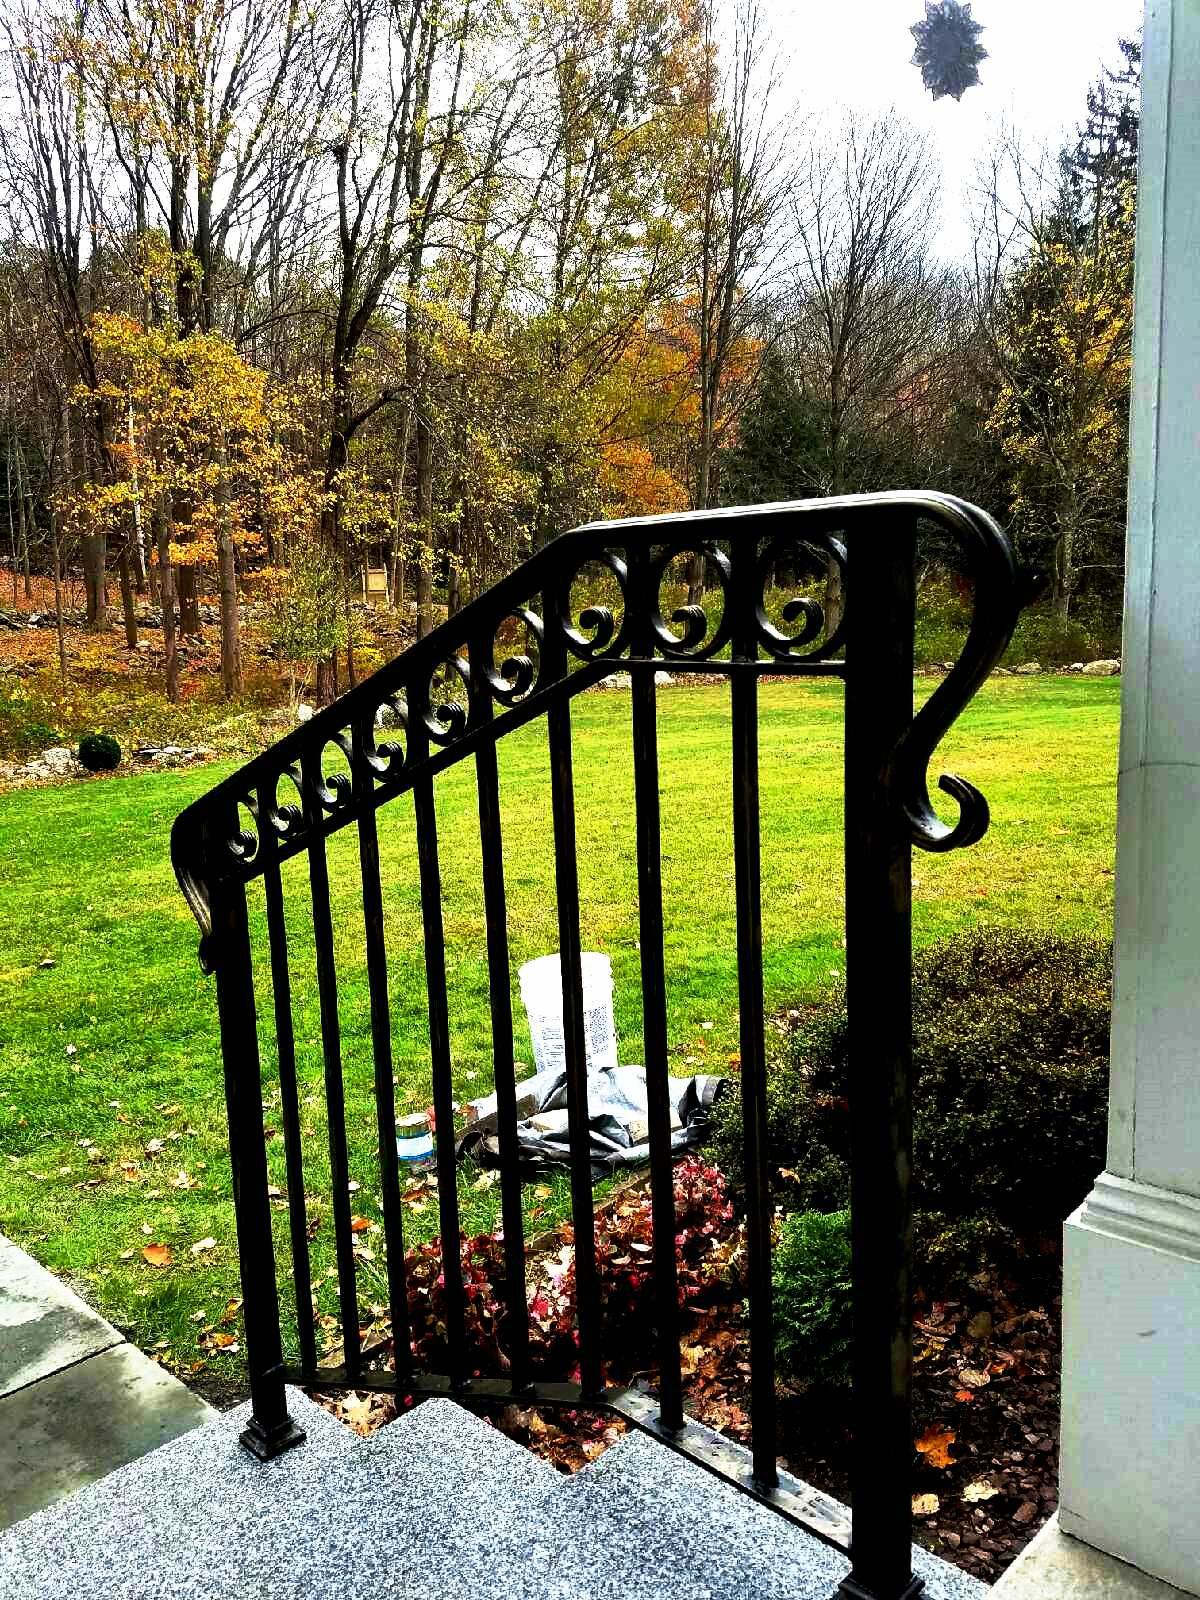 Best 3 Rail Wrought Iron Railing With Decorative Fishtail Rings 400 x 300